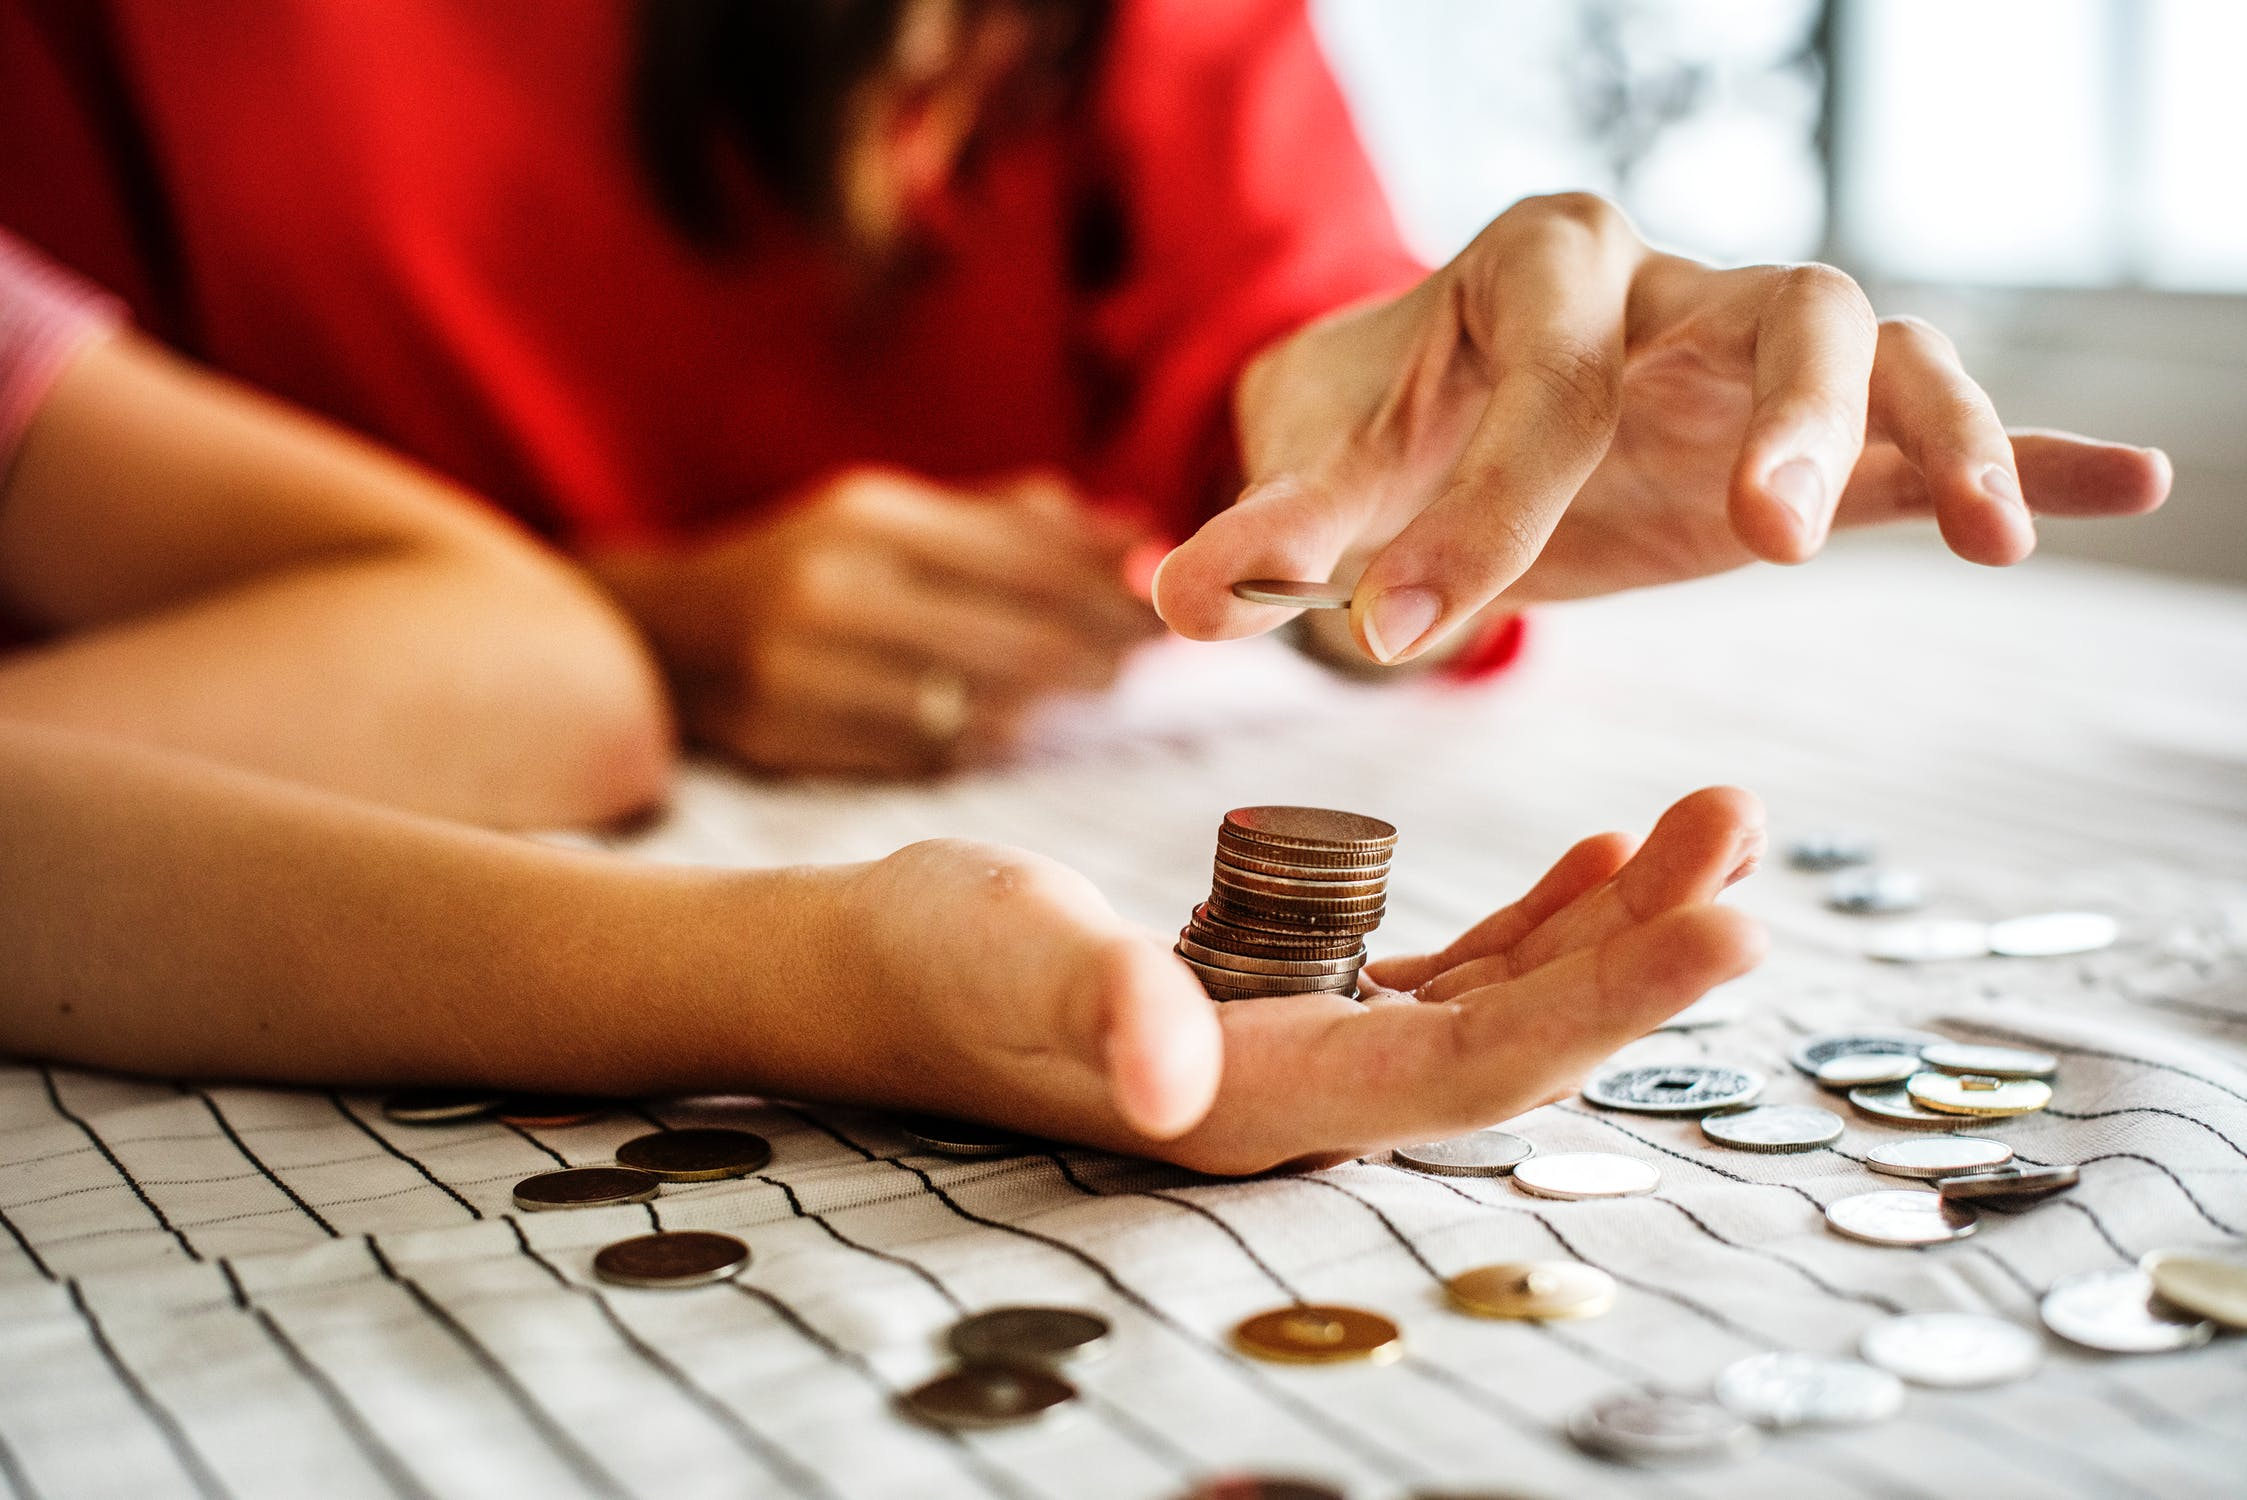 Money saving 101: All the basic tips that will help you lead your dream life